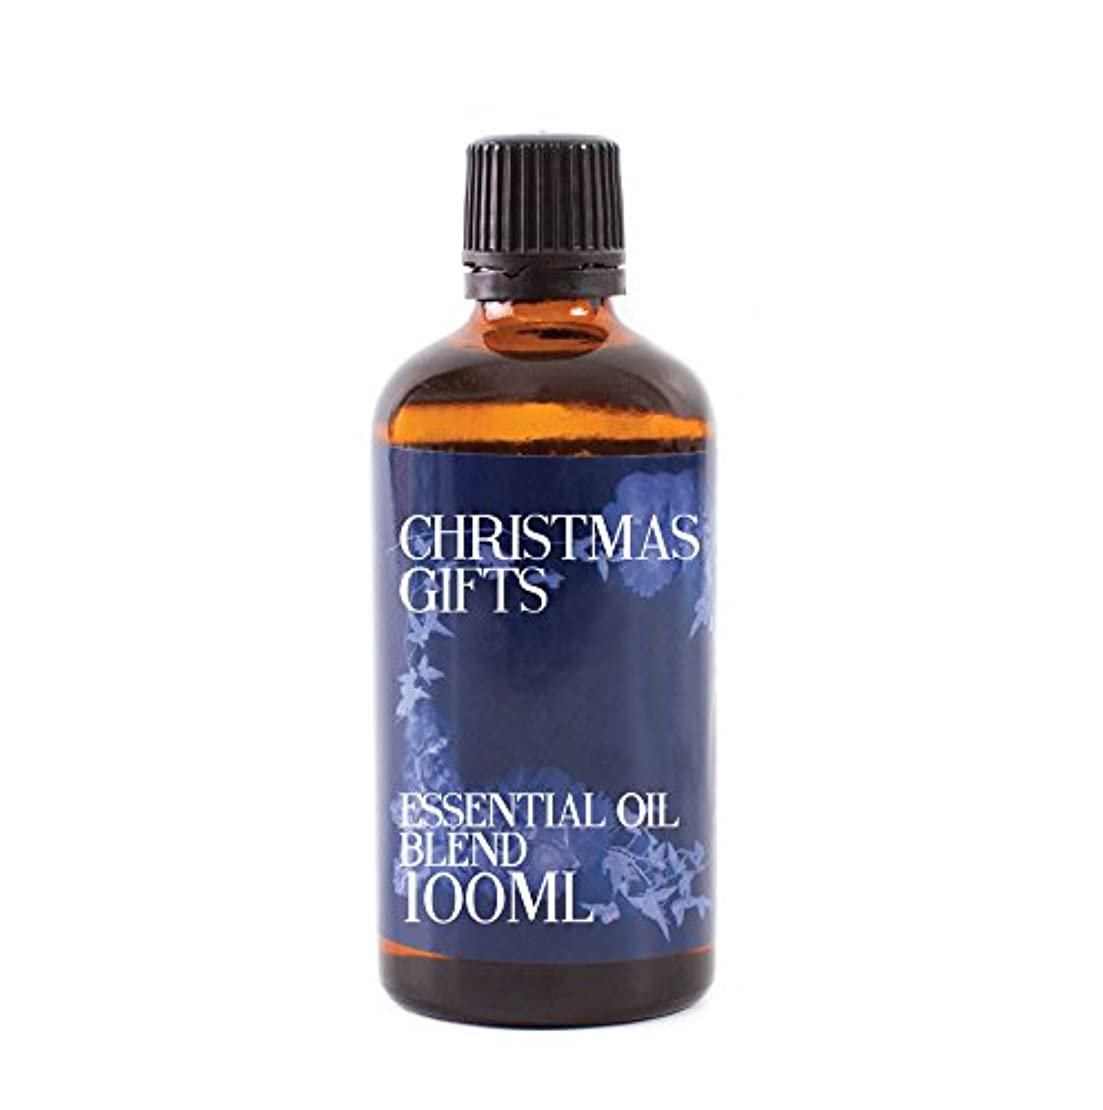 Mystix London | Christmas Gifts Essential Oil Blend - 100ml - 100% Pure